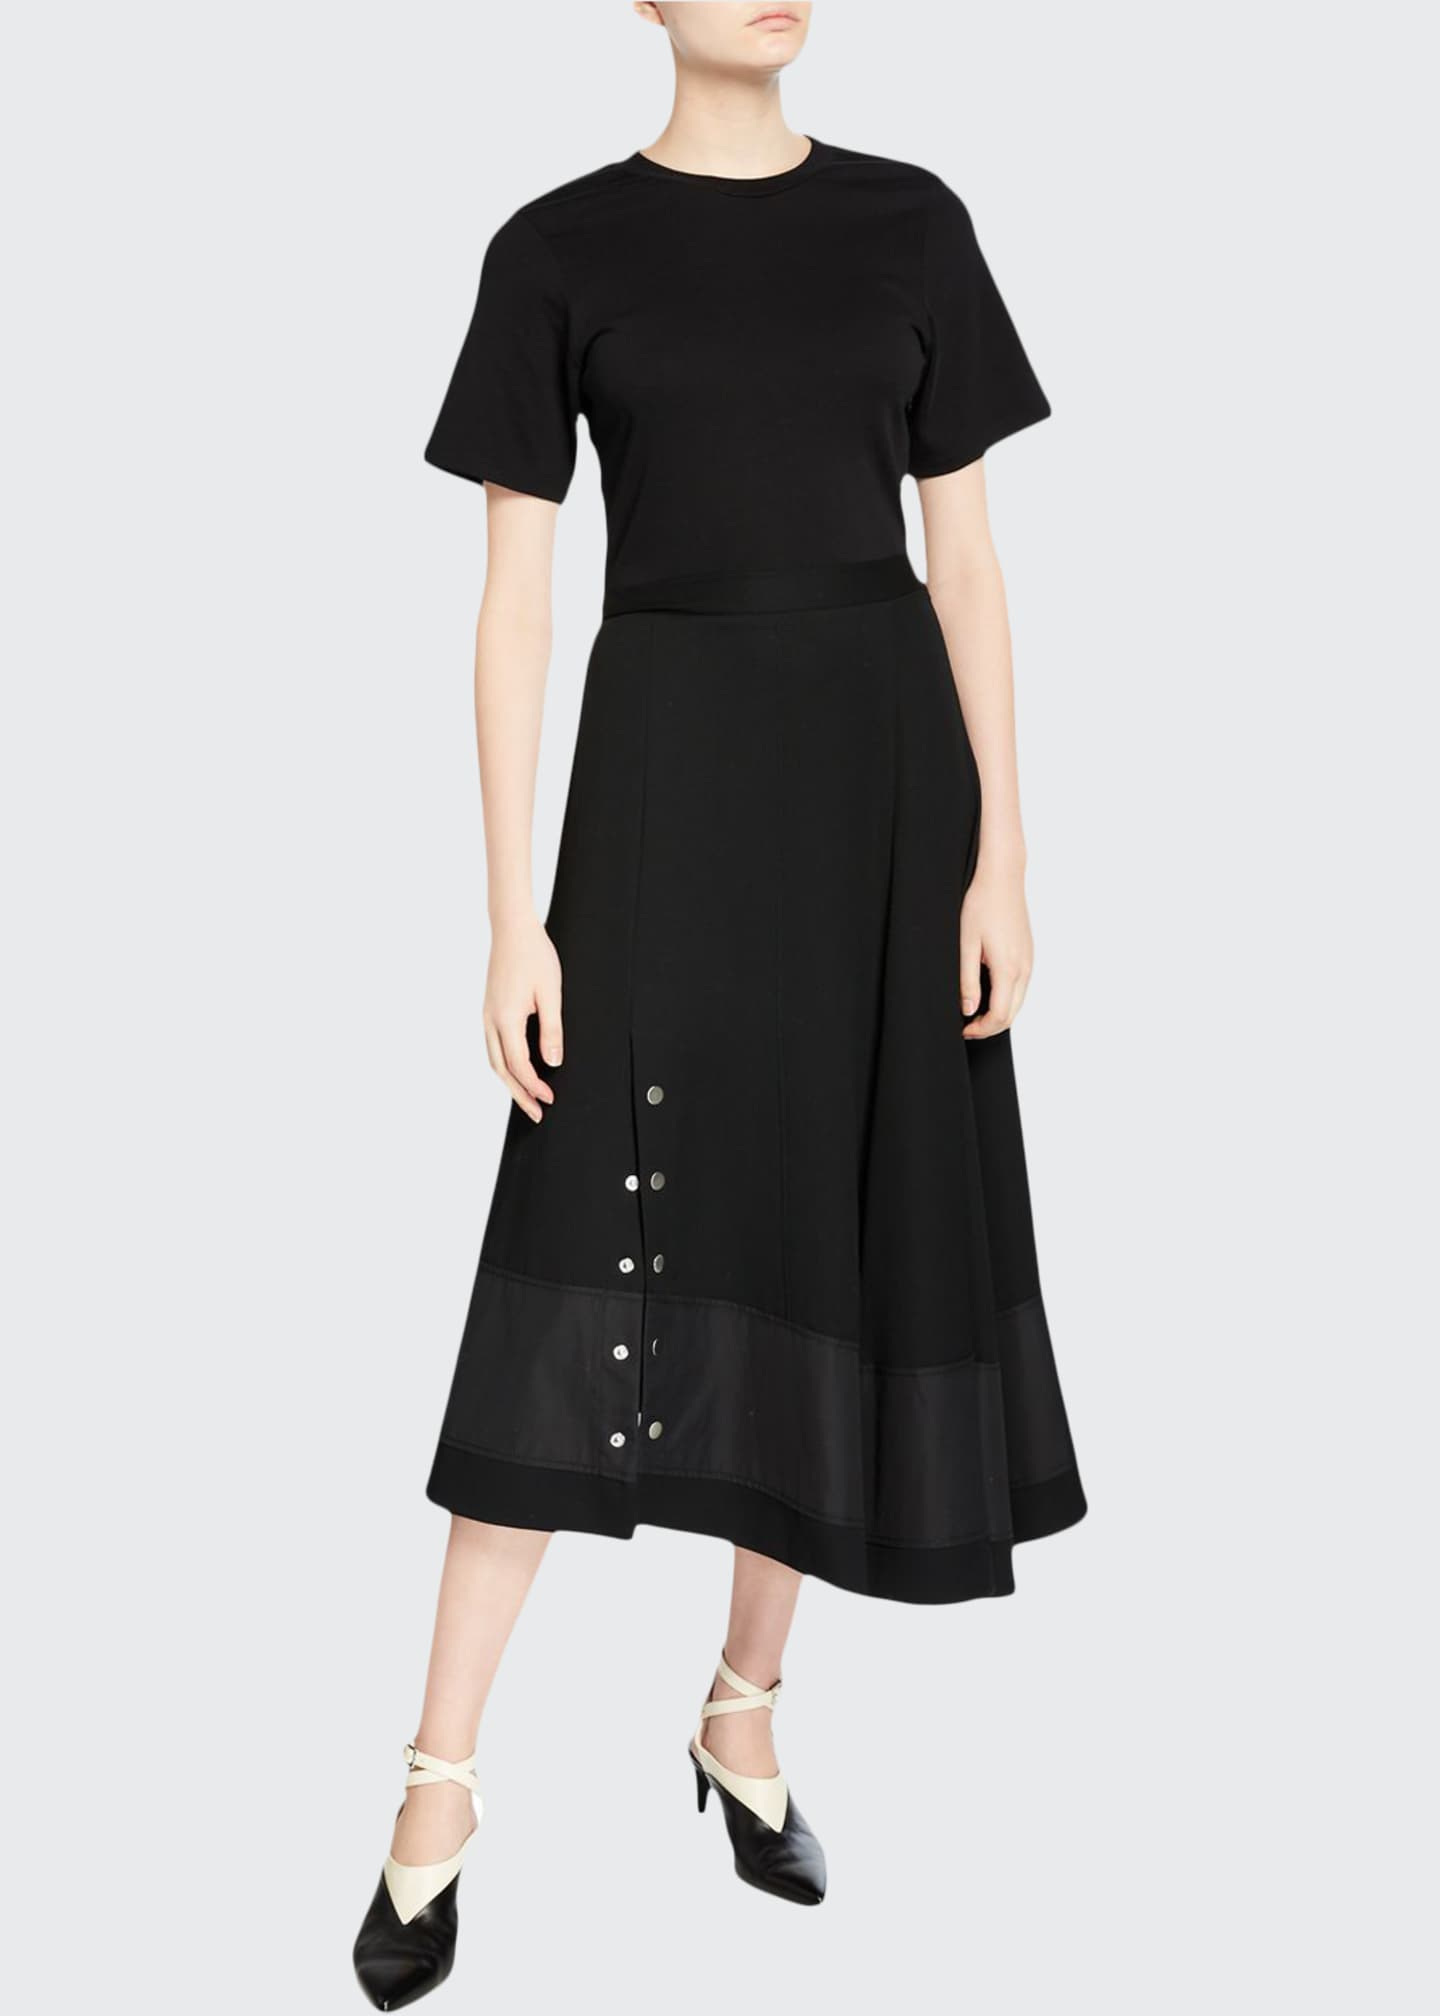 3.1 Phillip Lim Short-Sleeve Flared T-Shirt Dress with